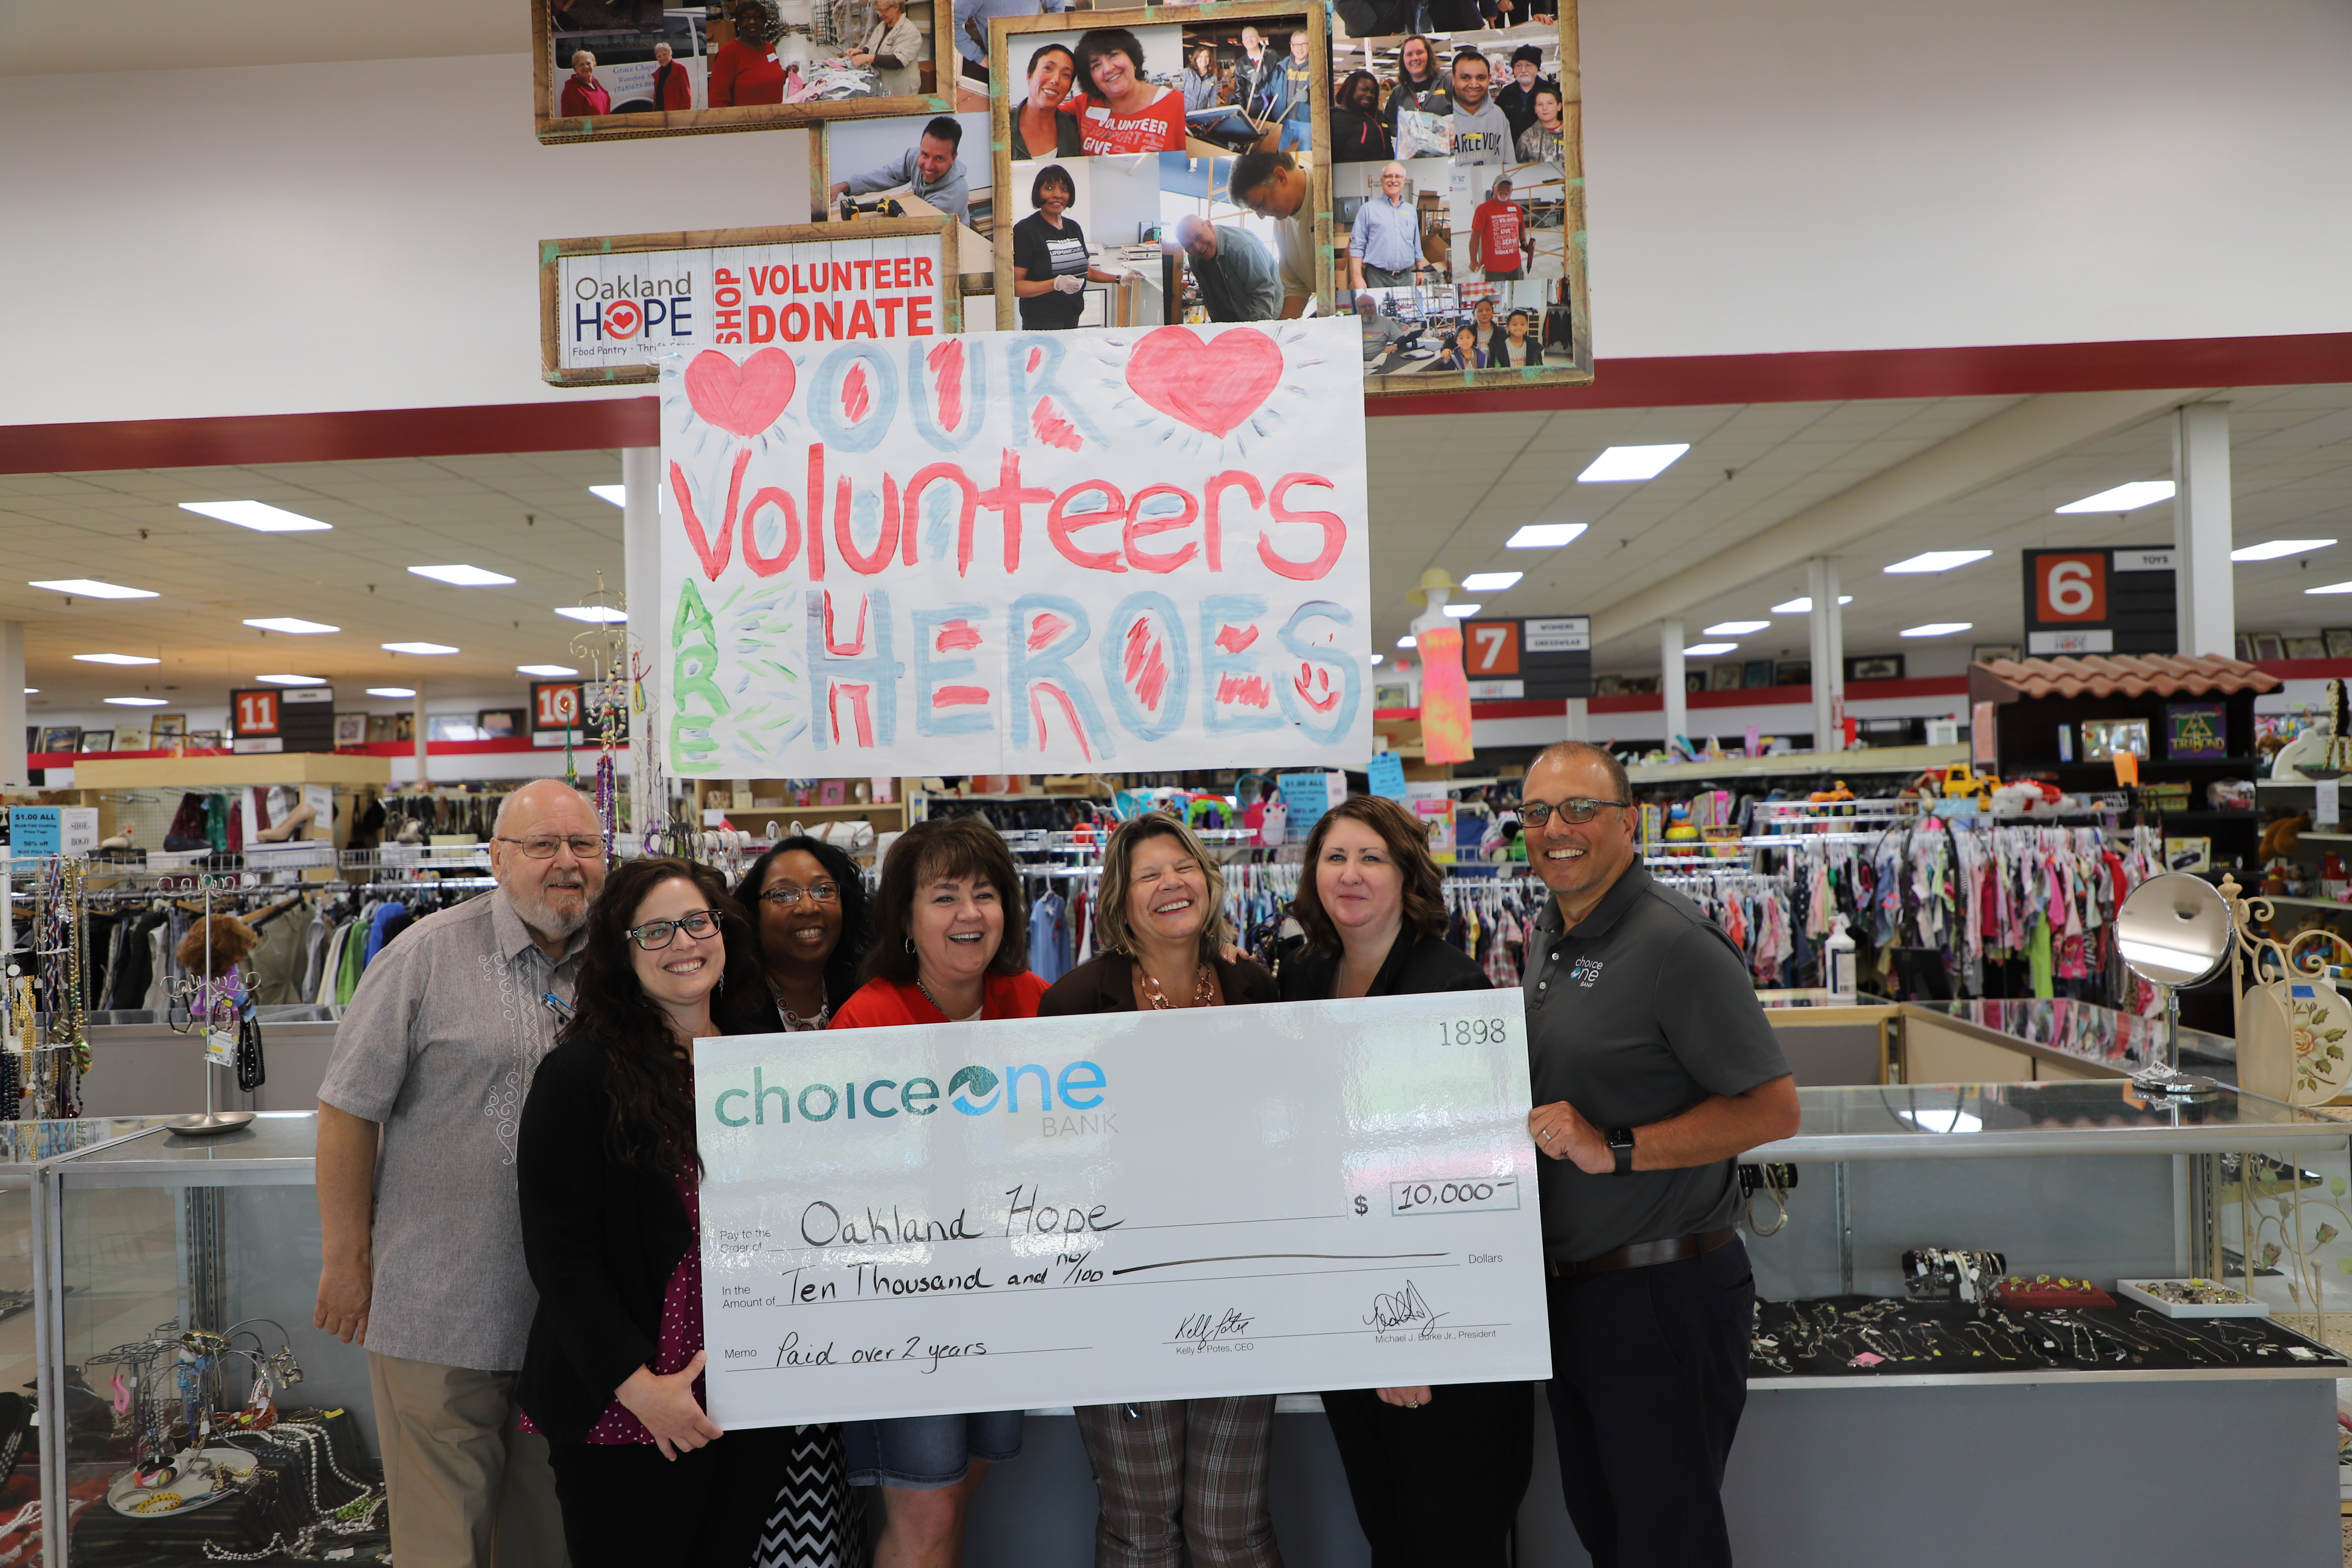 ChoiceOne delivers funds through check to Oakland Hope